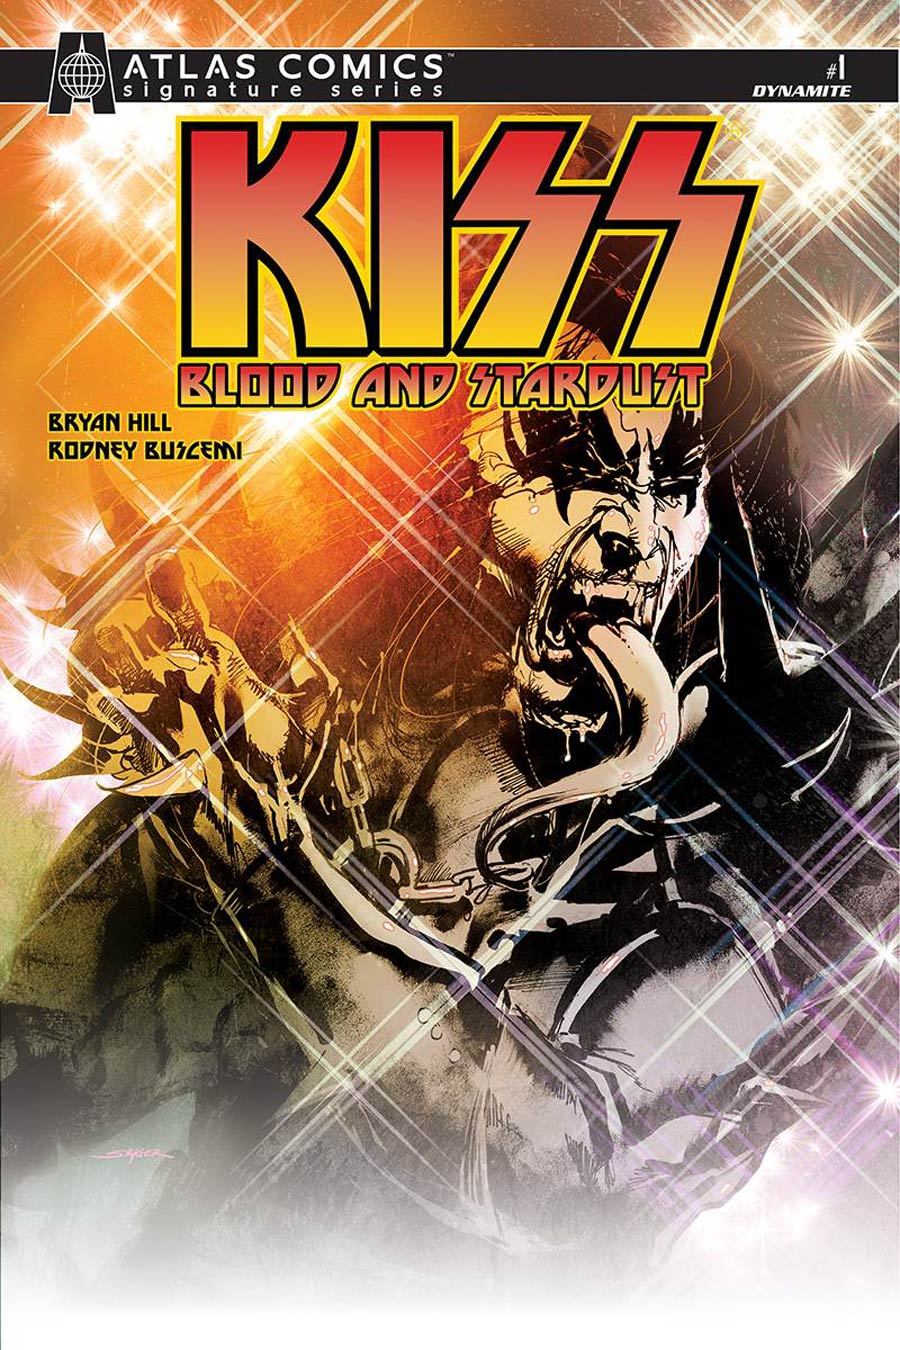 KISS Blood And Stardust #1 Cover N Atlas Comics Signature Series Signed By Gene Simmons